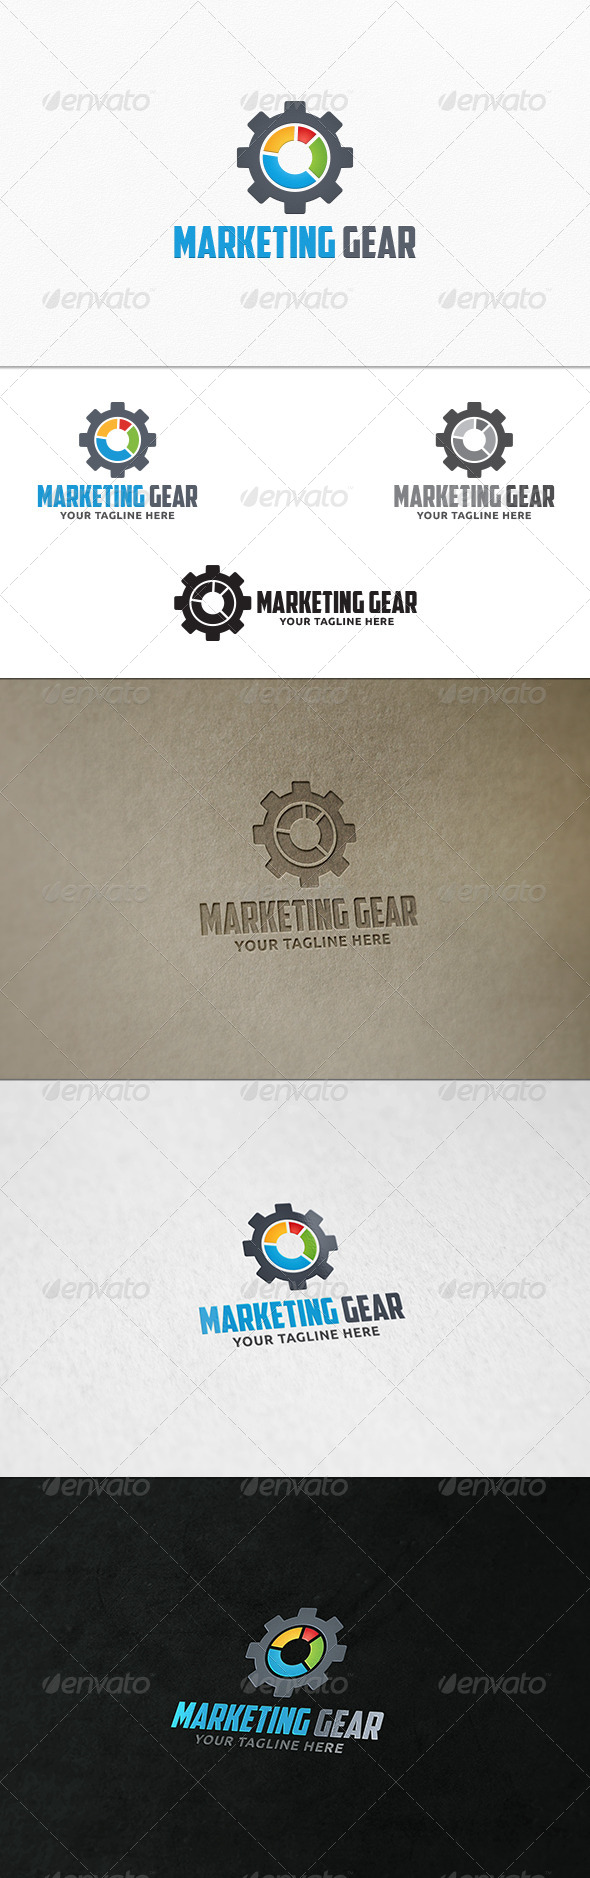 GraphicRiver Marketing Gear Logo Template 7706958